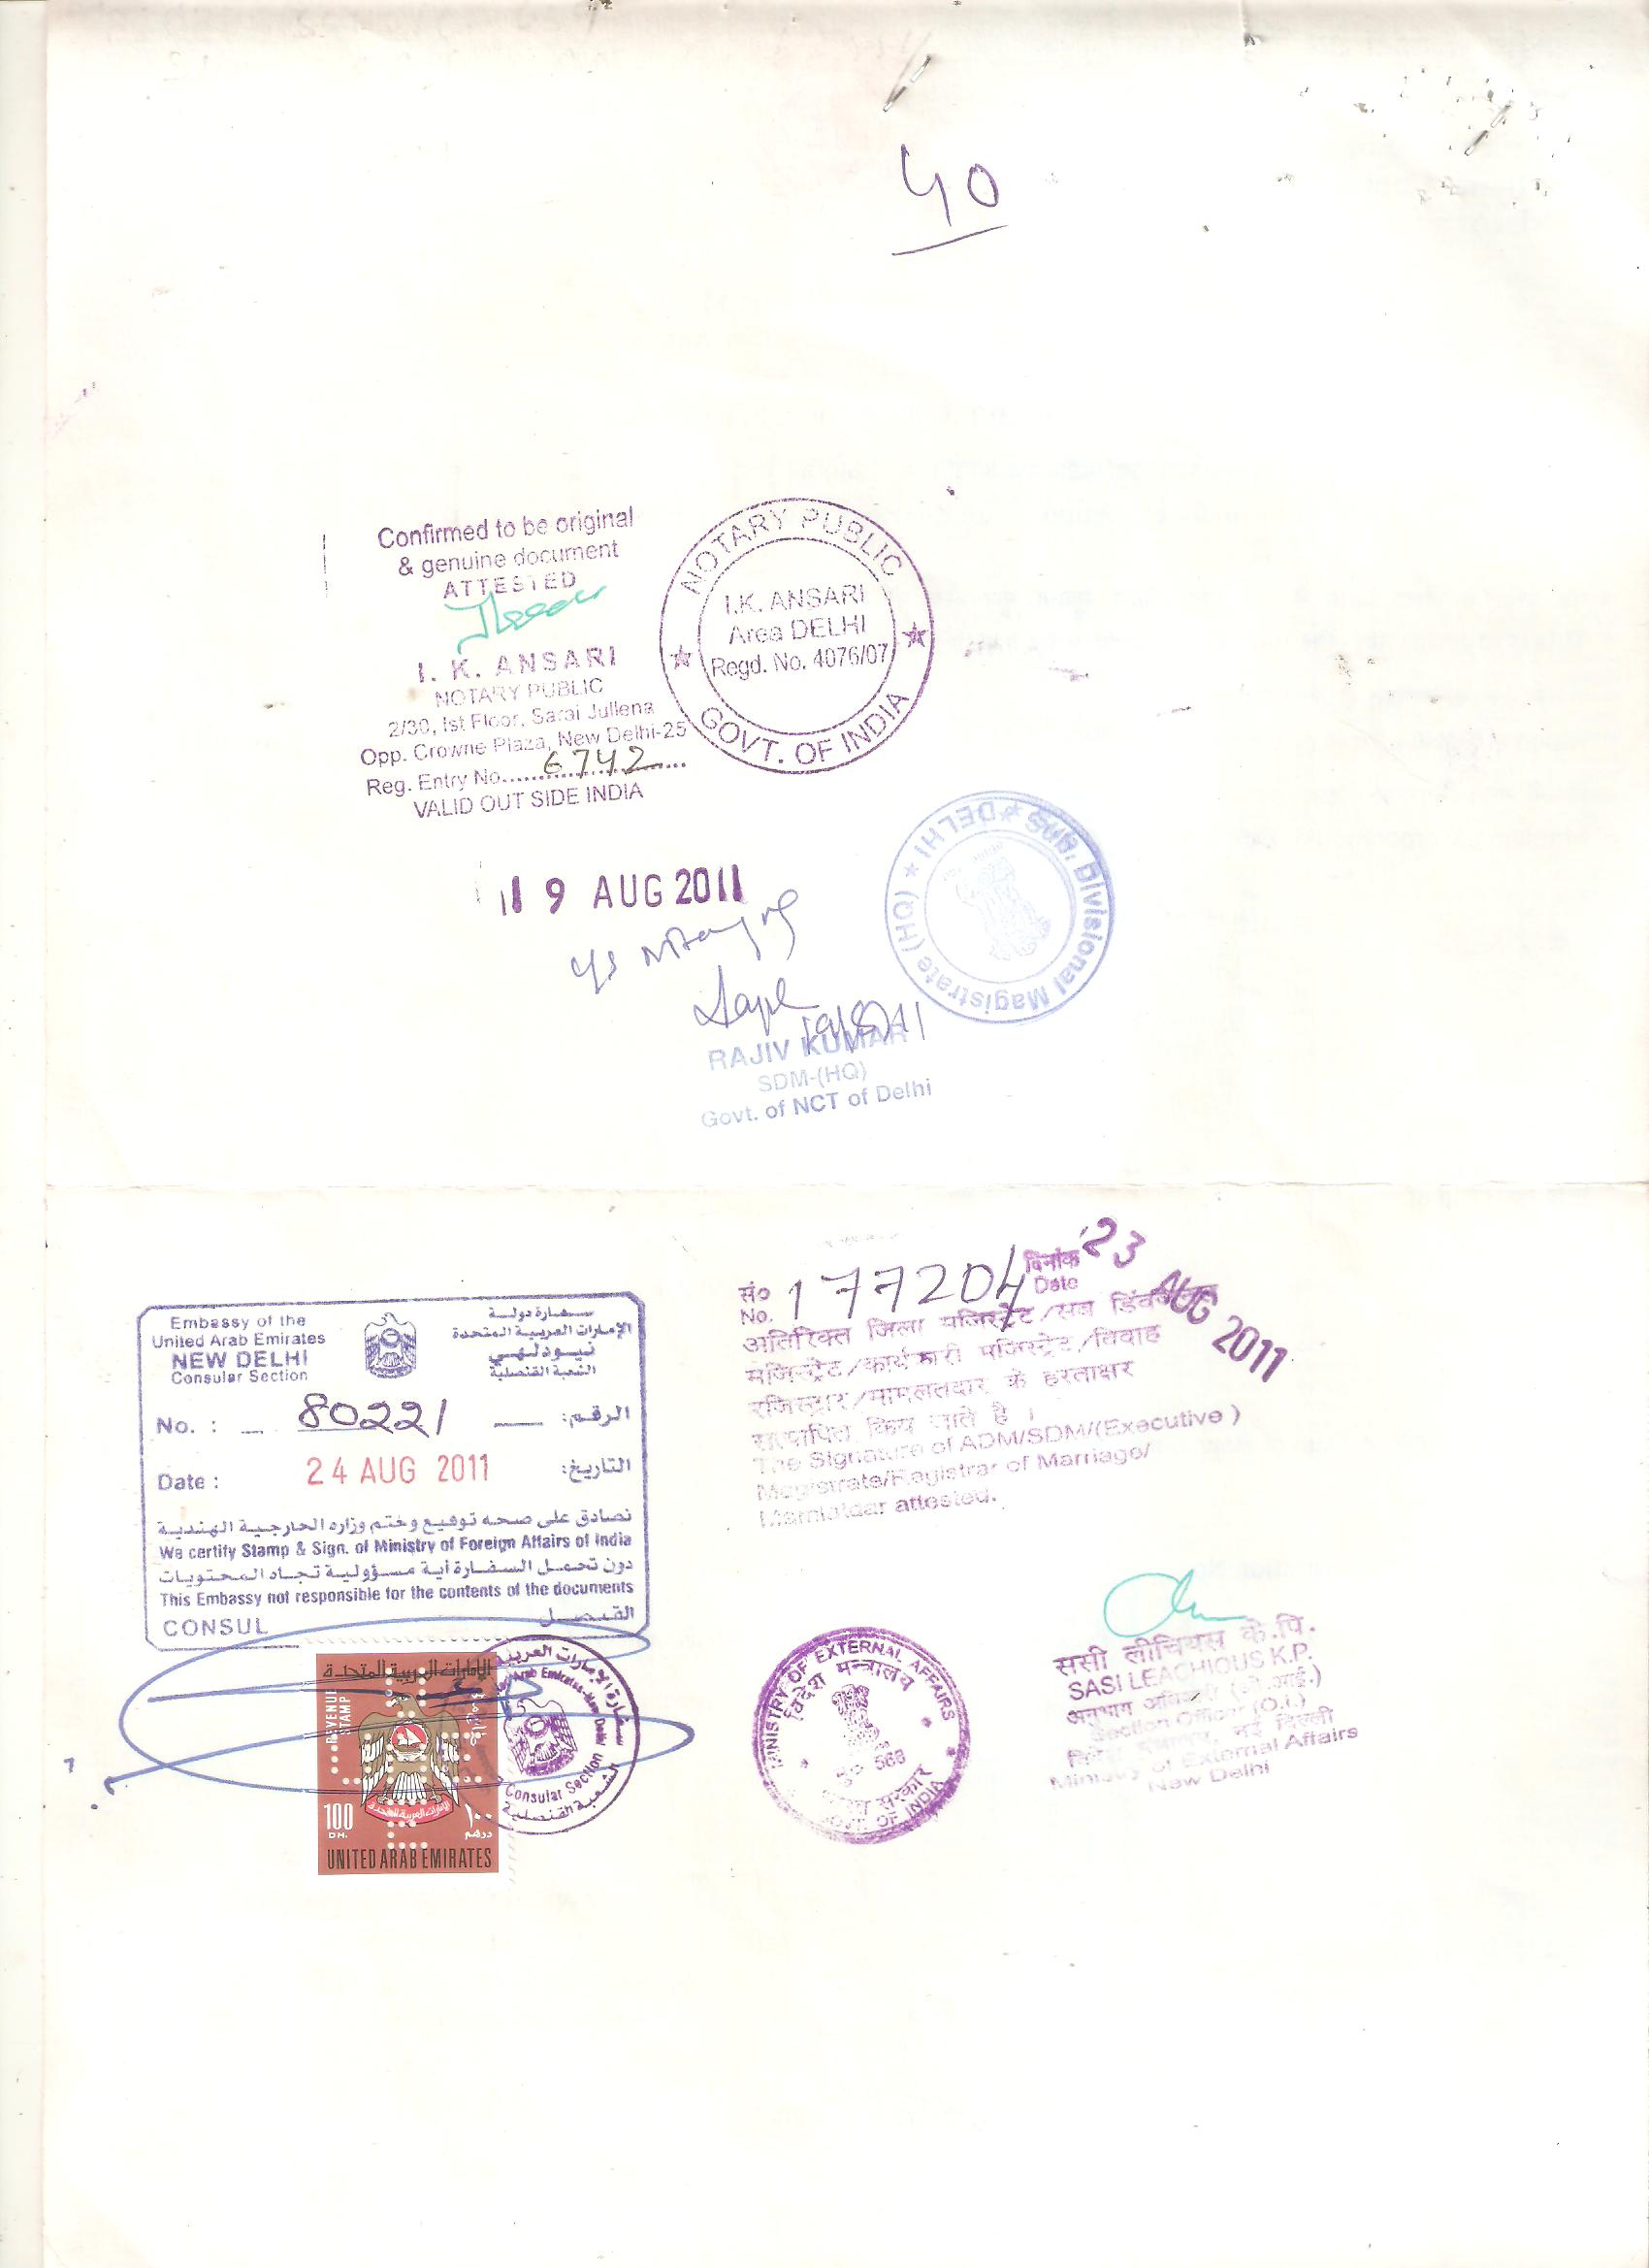 Iran embassy attestation services from mumbai chandigarh certificate sample yadclub Image collections